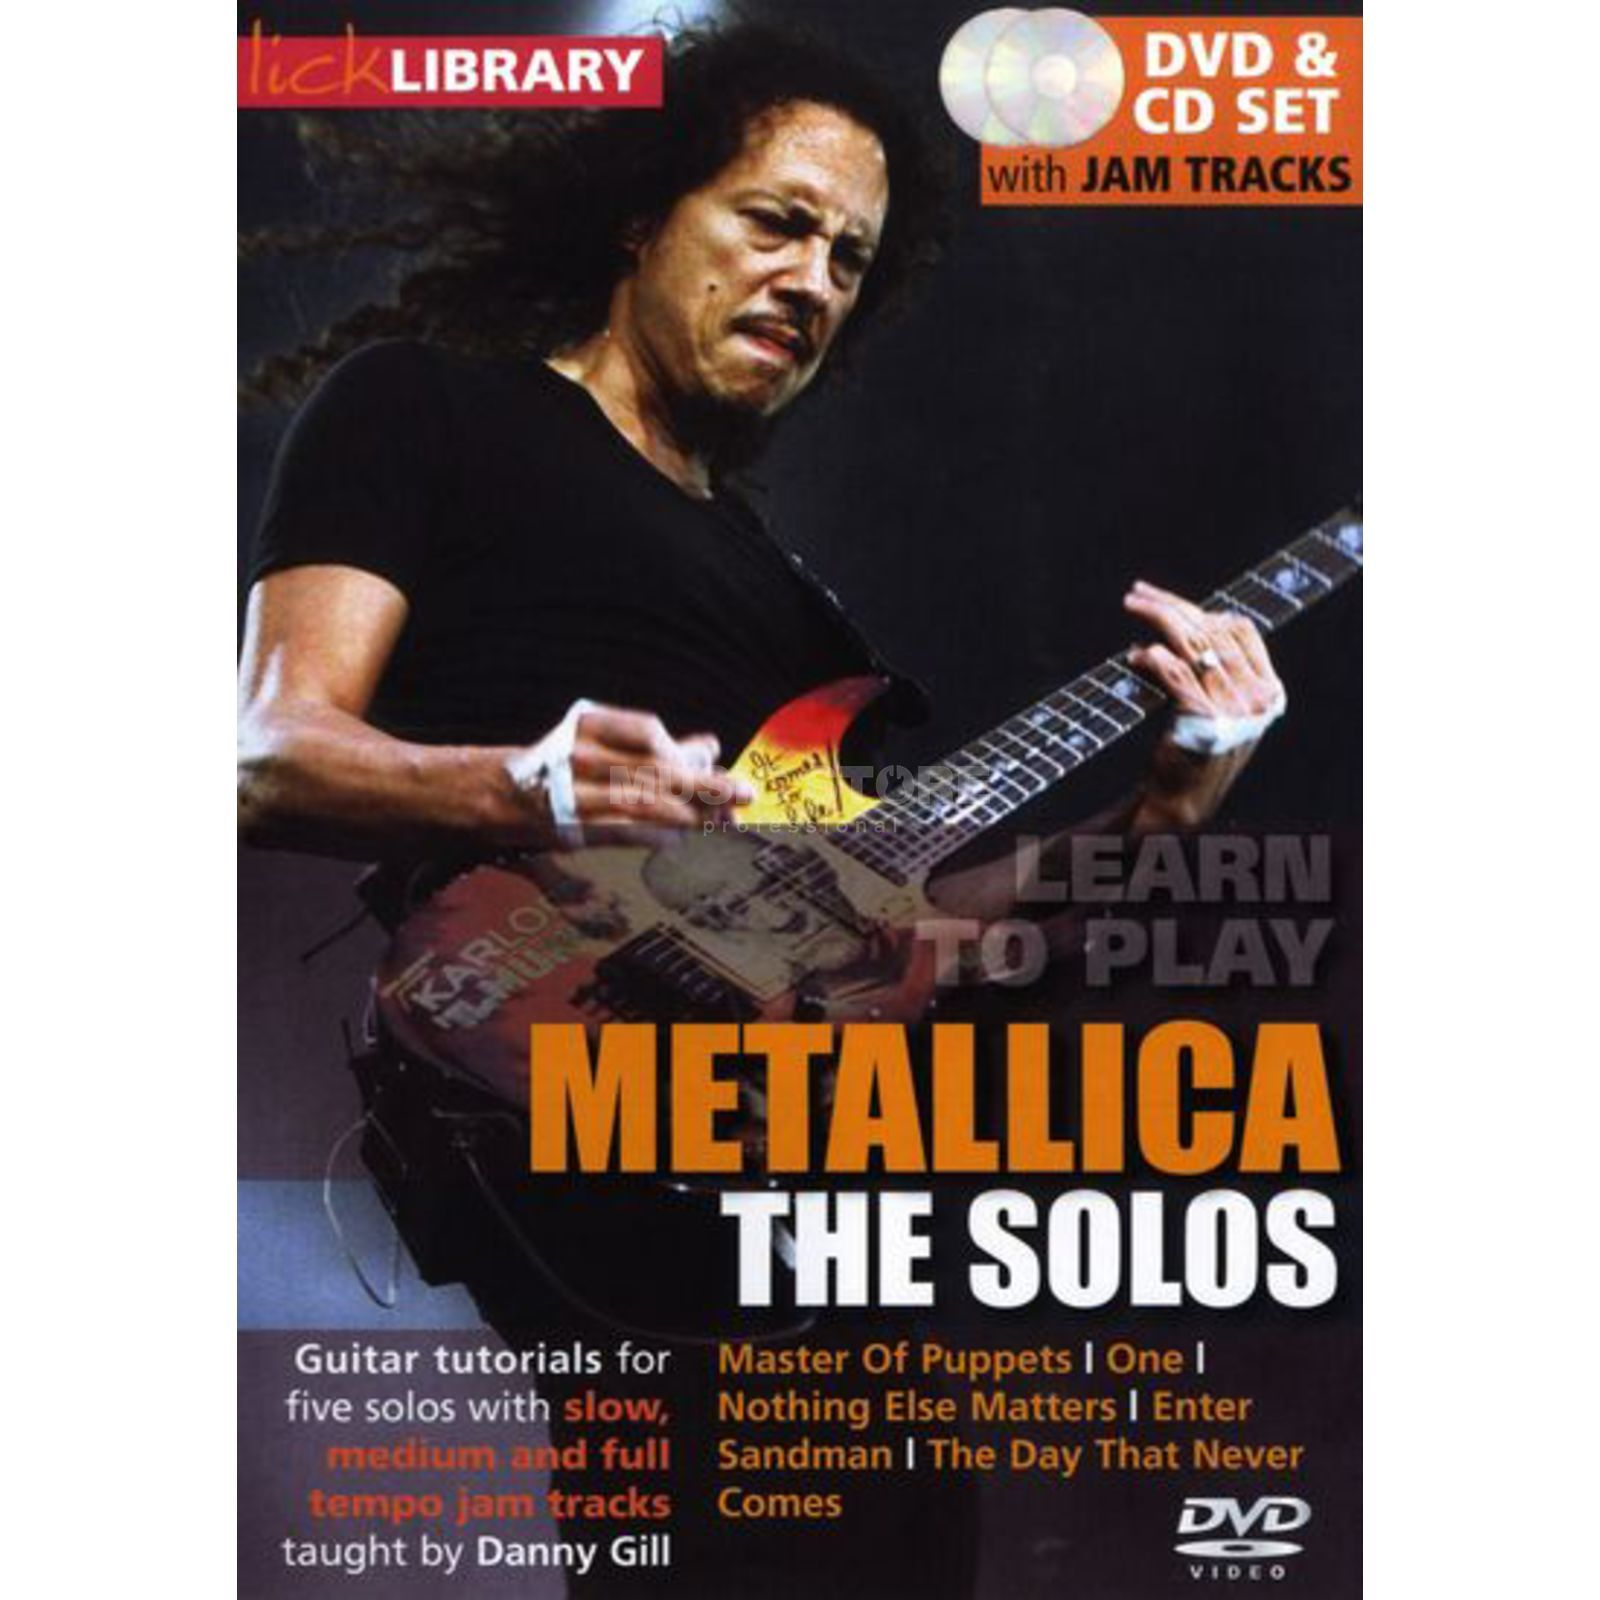 Roadrock International  Lick Library: Learn To Play Metallica - The Solos DVD Produktbild